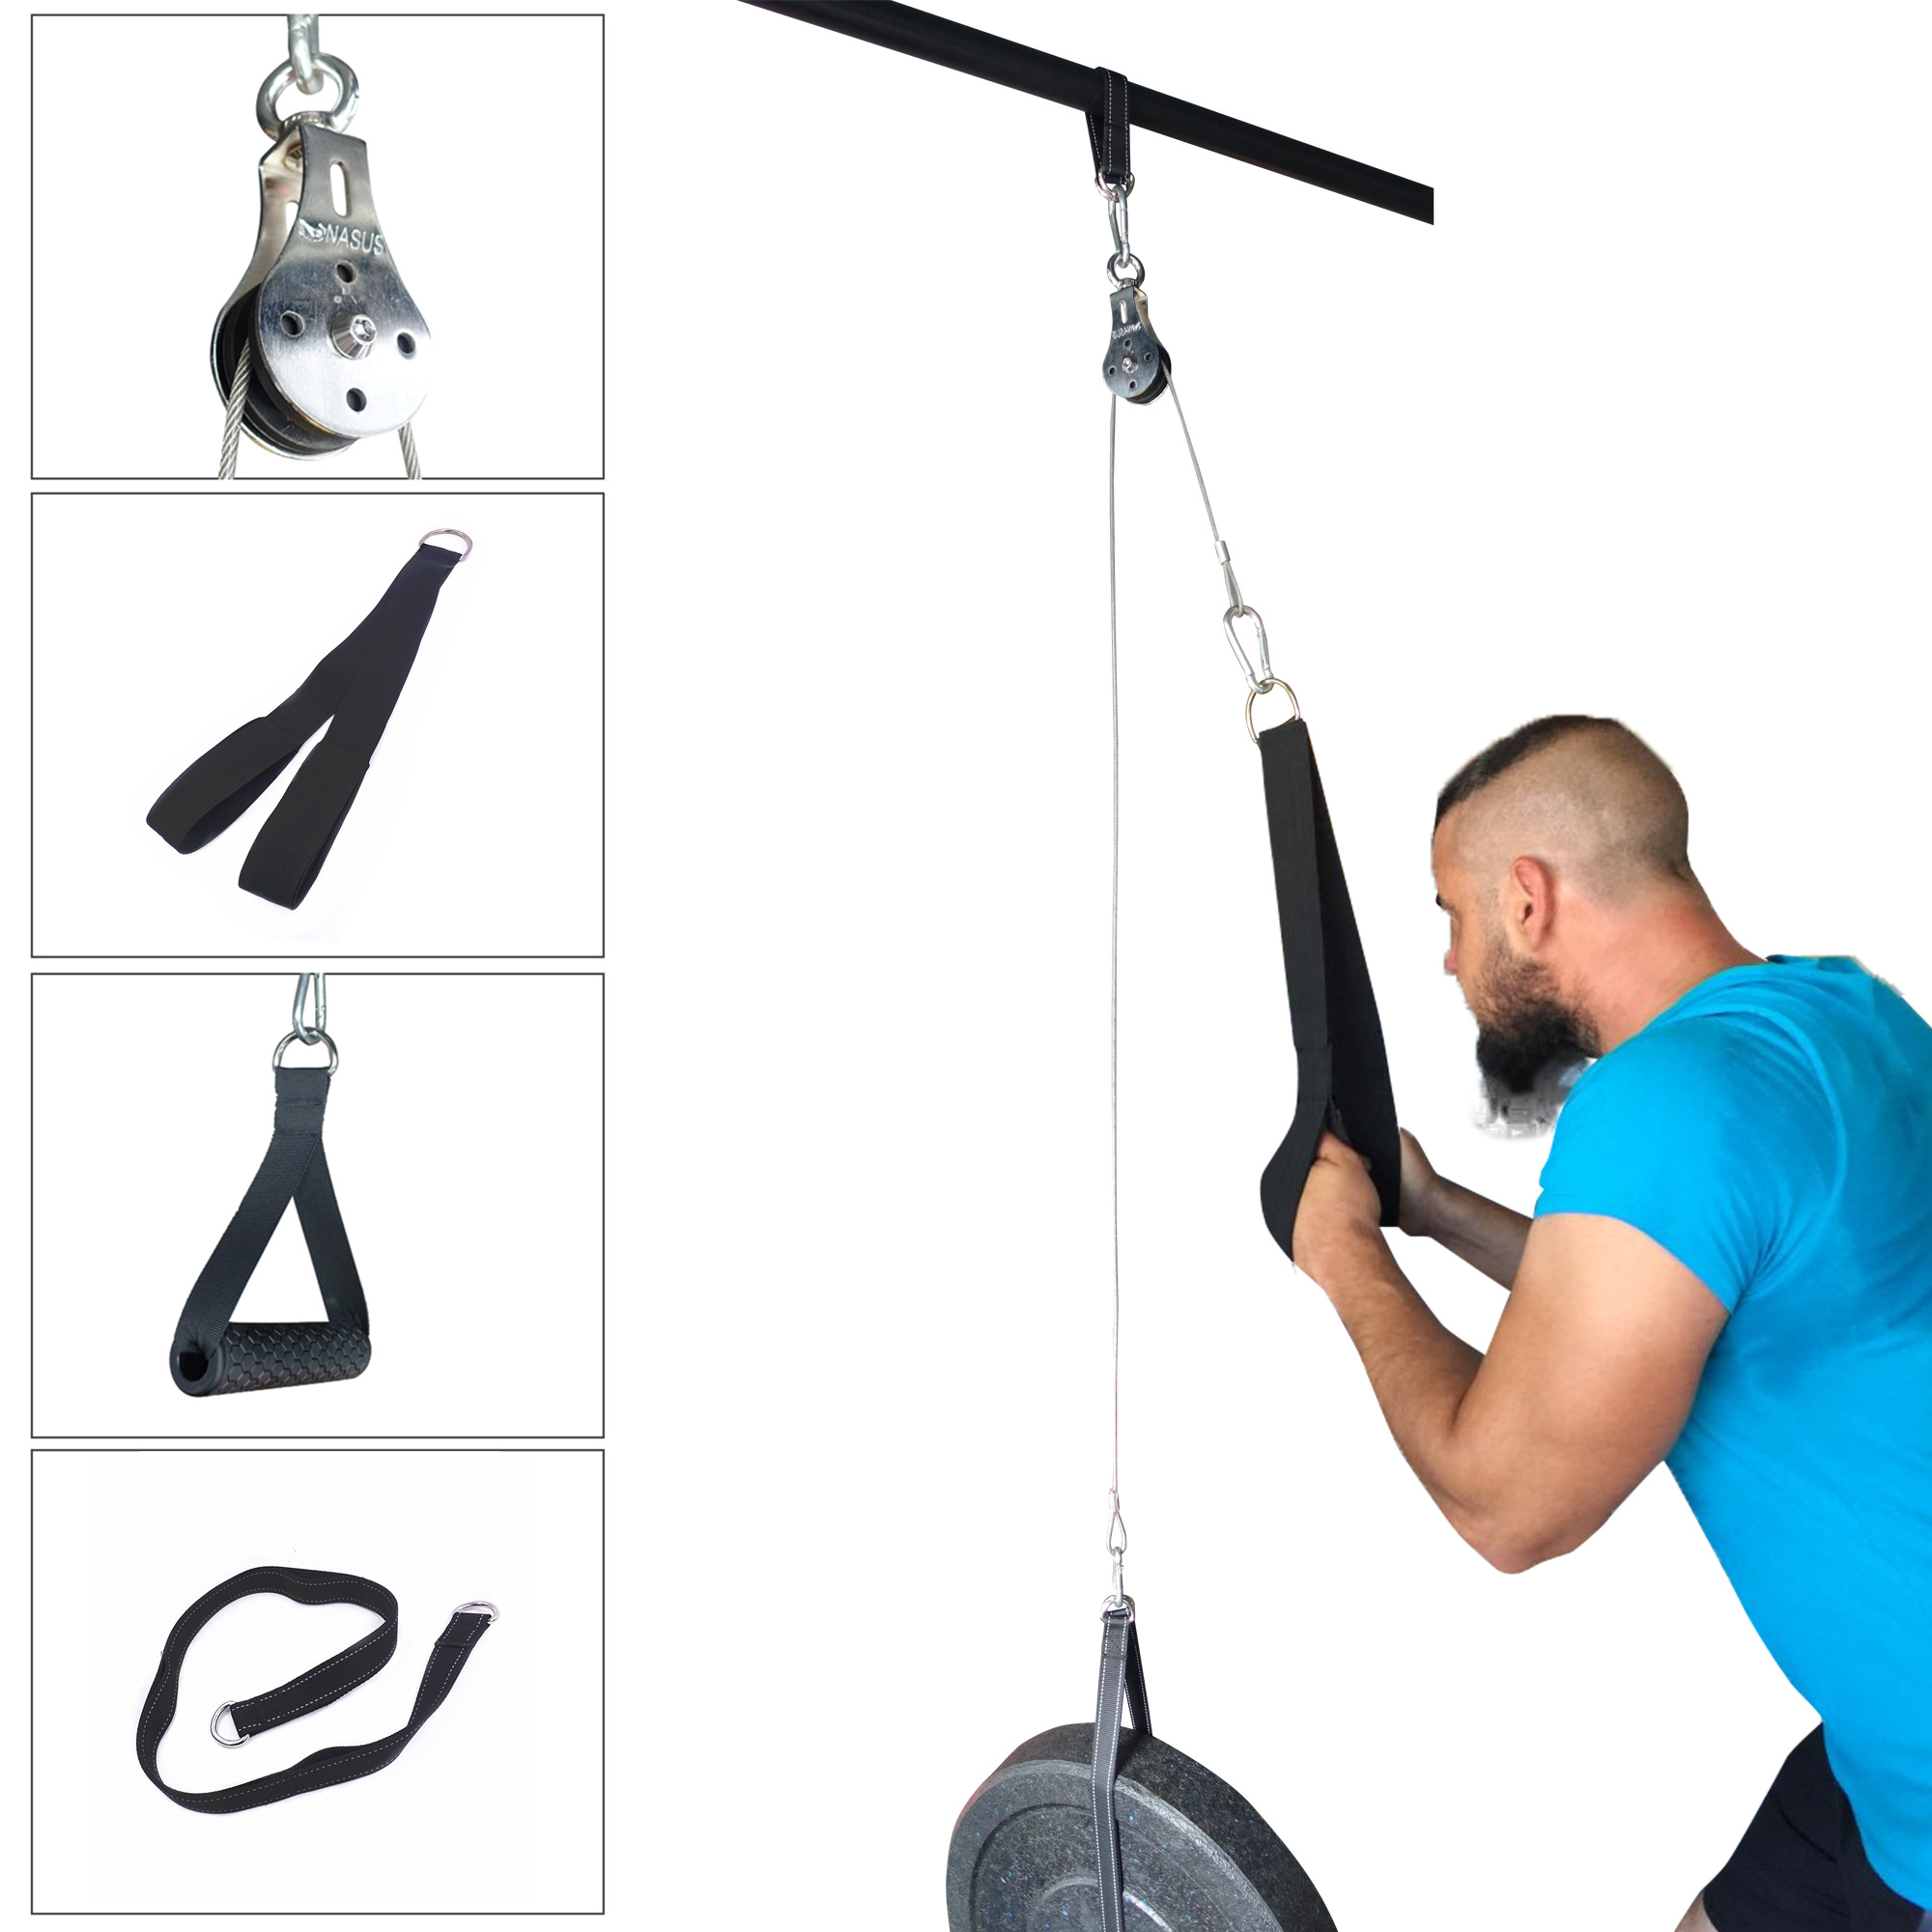 Fitness DIY Pulley Cable Machine Attachment System Arm Biceps Triceps Blaster Hand Strength Trainning Home Gym Workout Equipment image